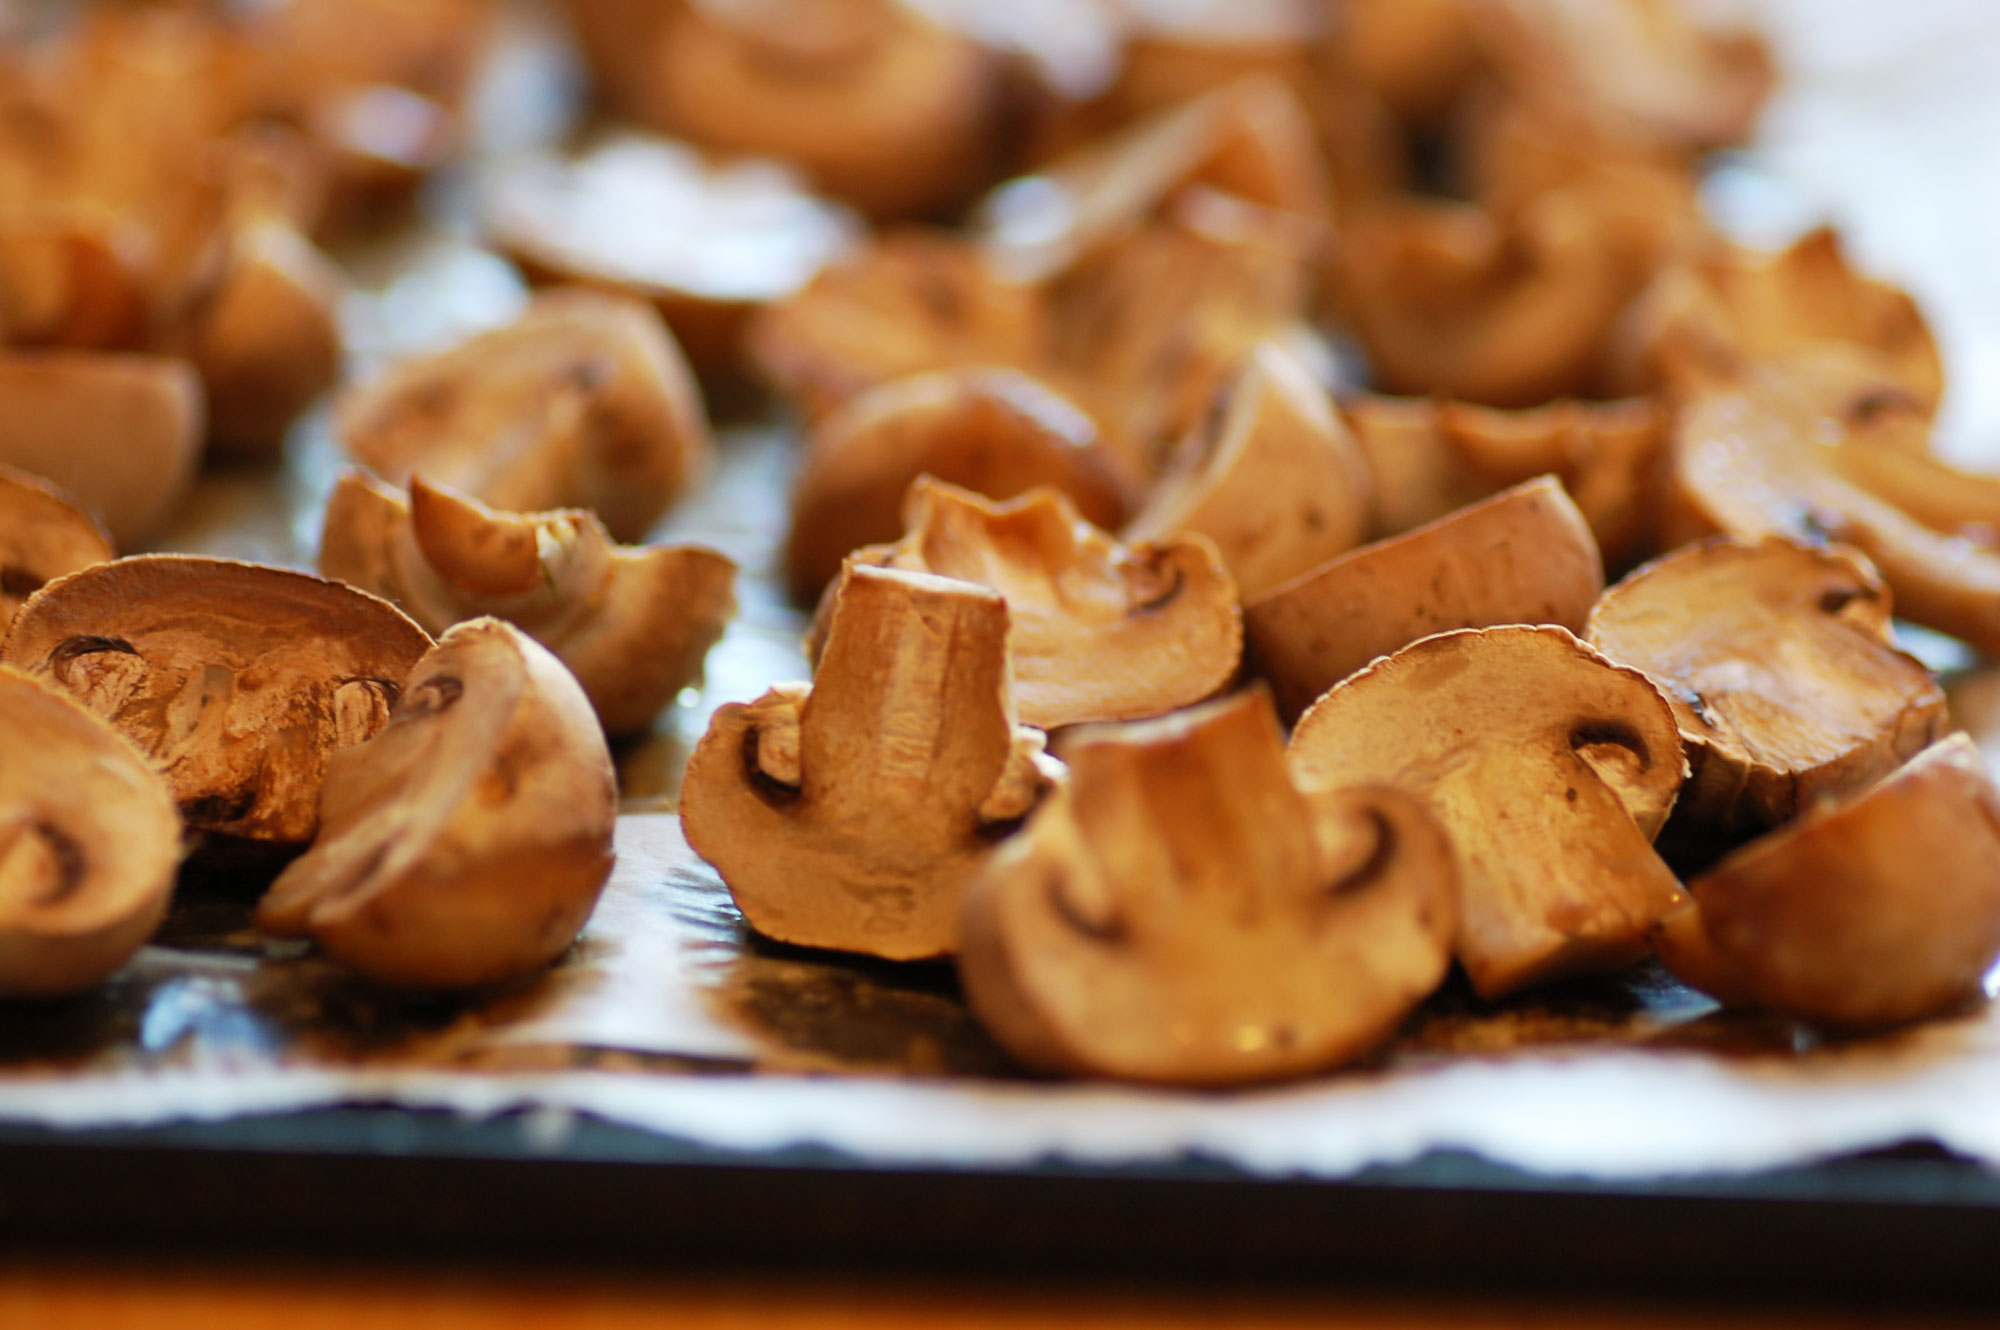 What factors affect the calories of fried mushrooms